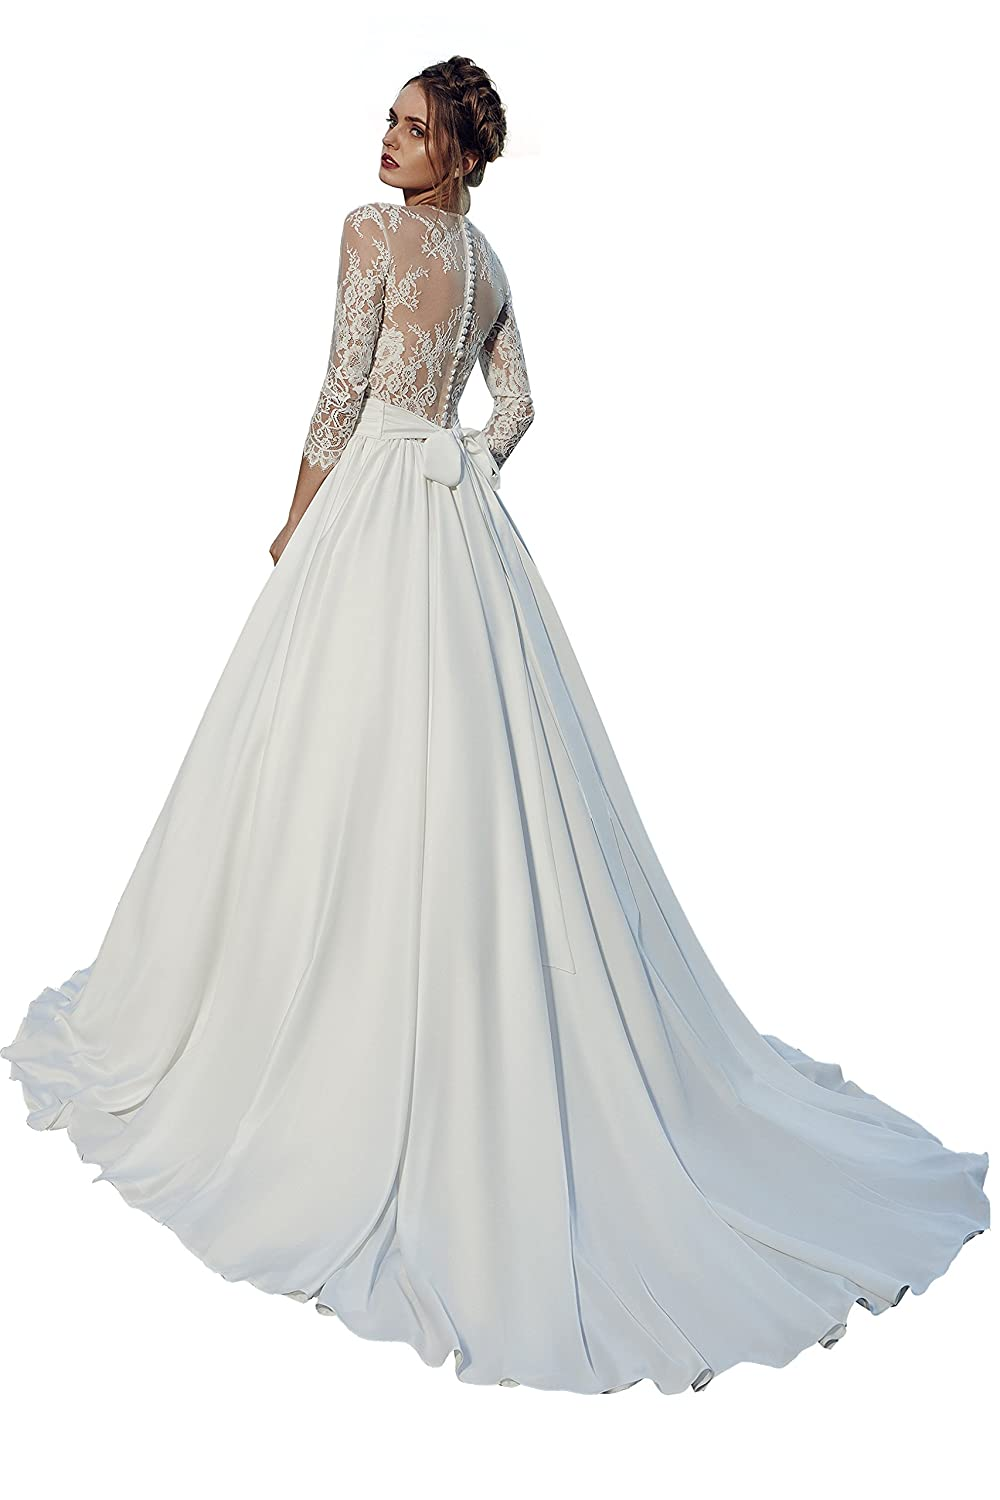 Lanesta Woman\'s Wedding Dress with A-line Silhouette and Button Up ...